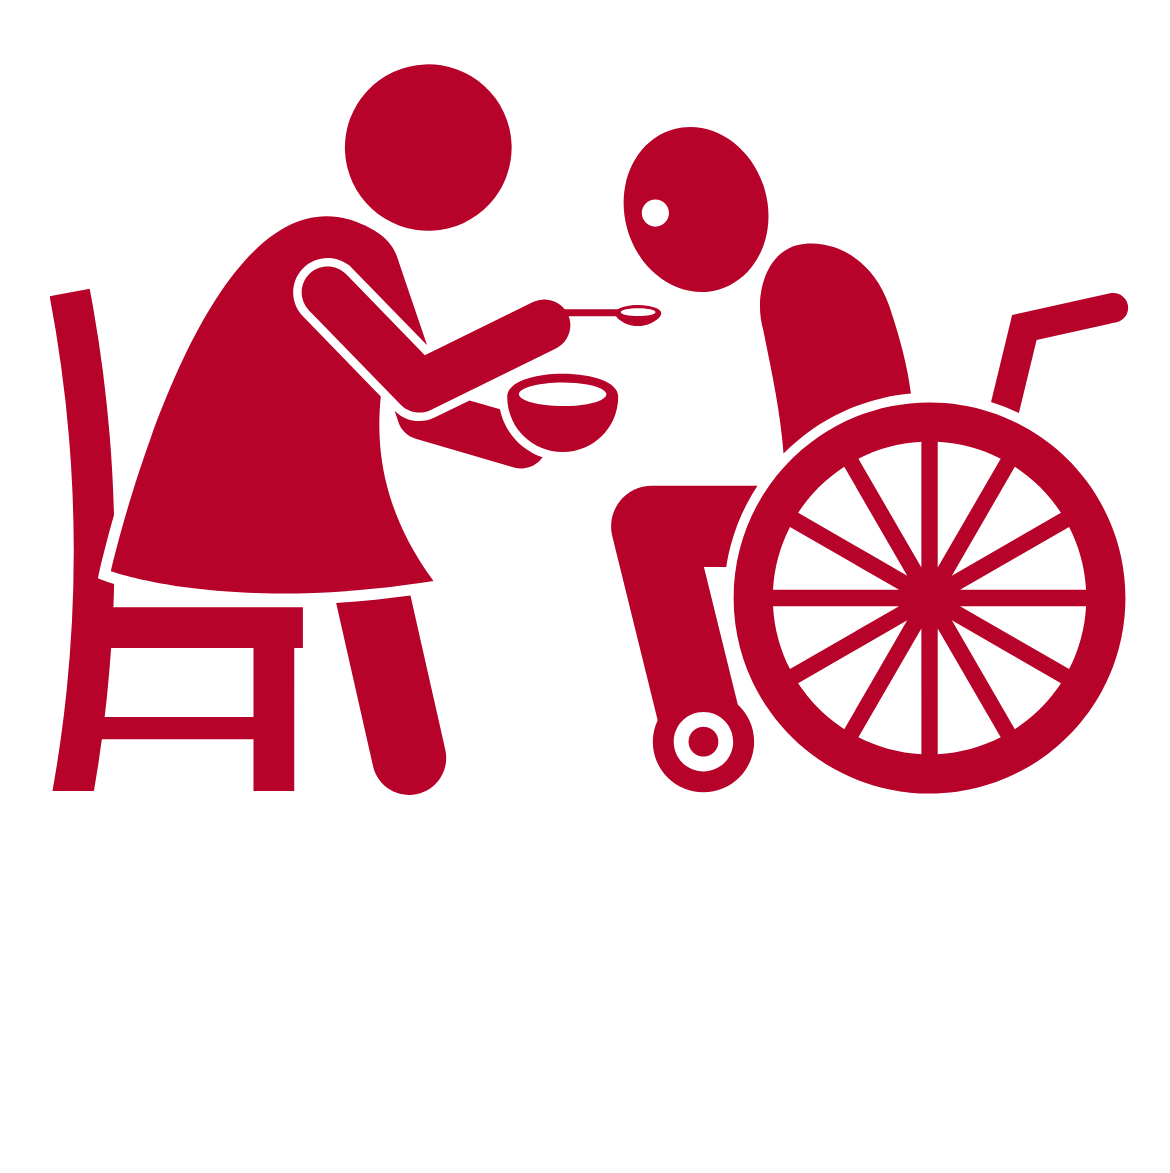 Our Accountants For Nursing Homes Take Care of Your Assets